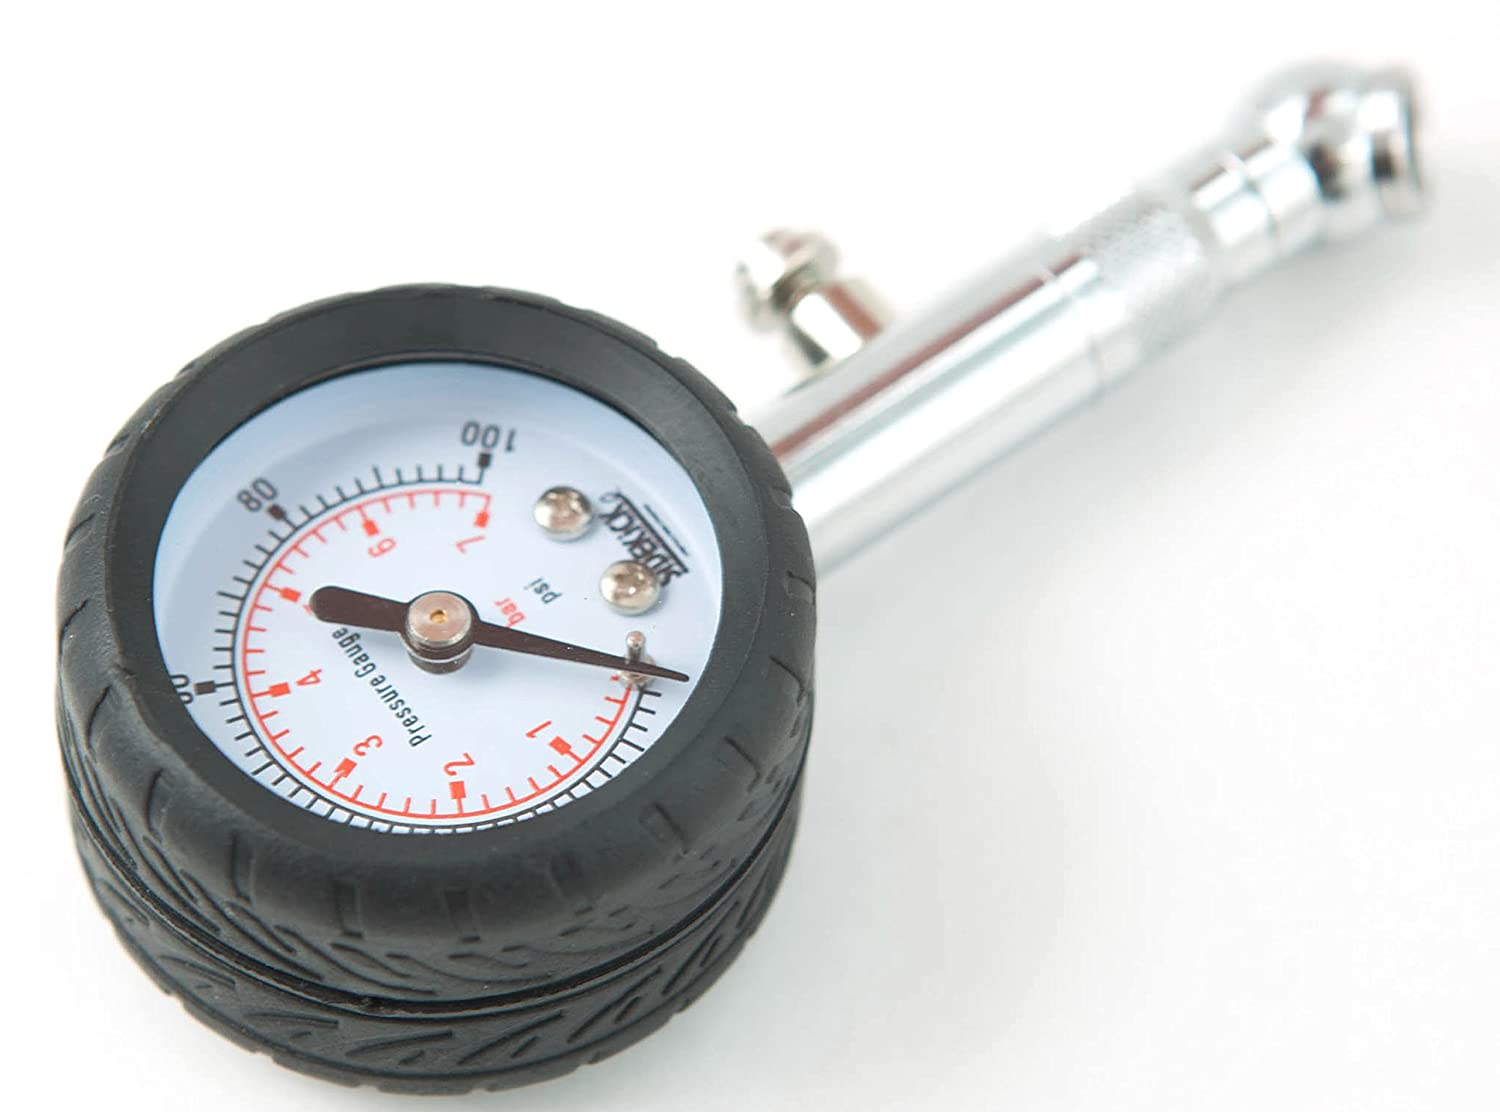 Sidekick Tire Pressure Gauge - Dual PSI and Bar - Air Bleed and Swivel Chuck Included